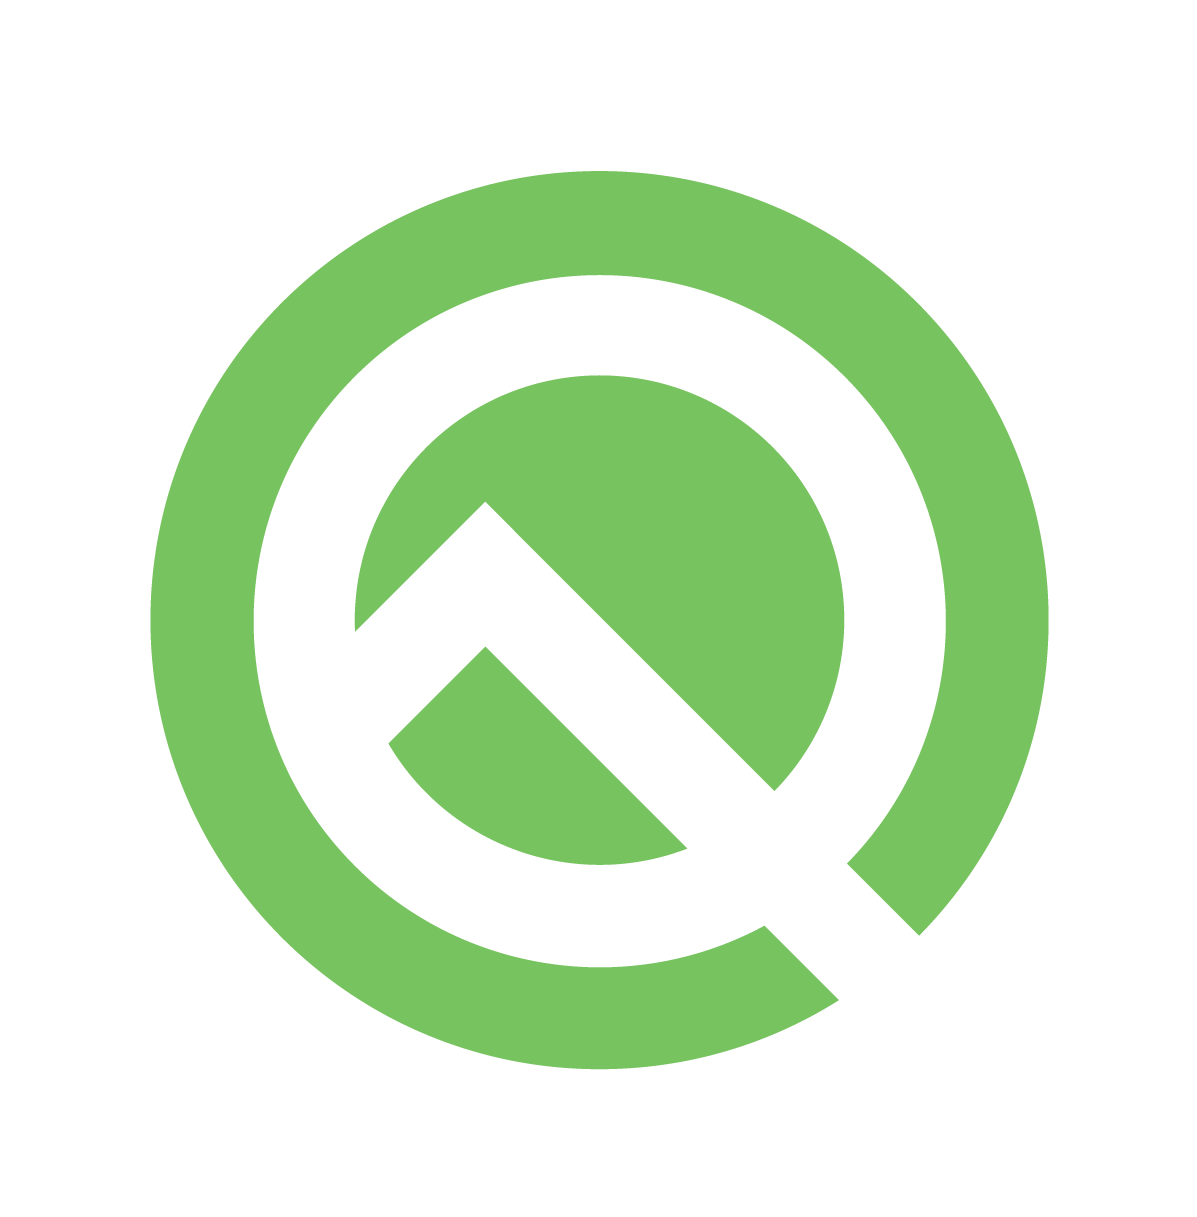 Android Developers Blog: Introducing Android Q Beta